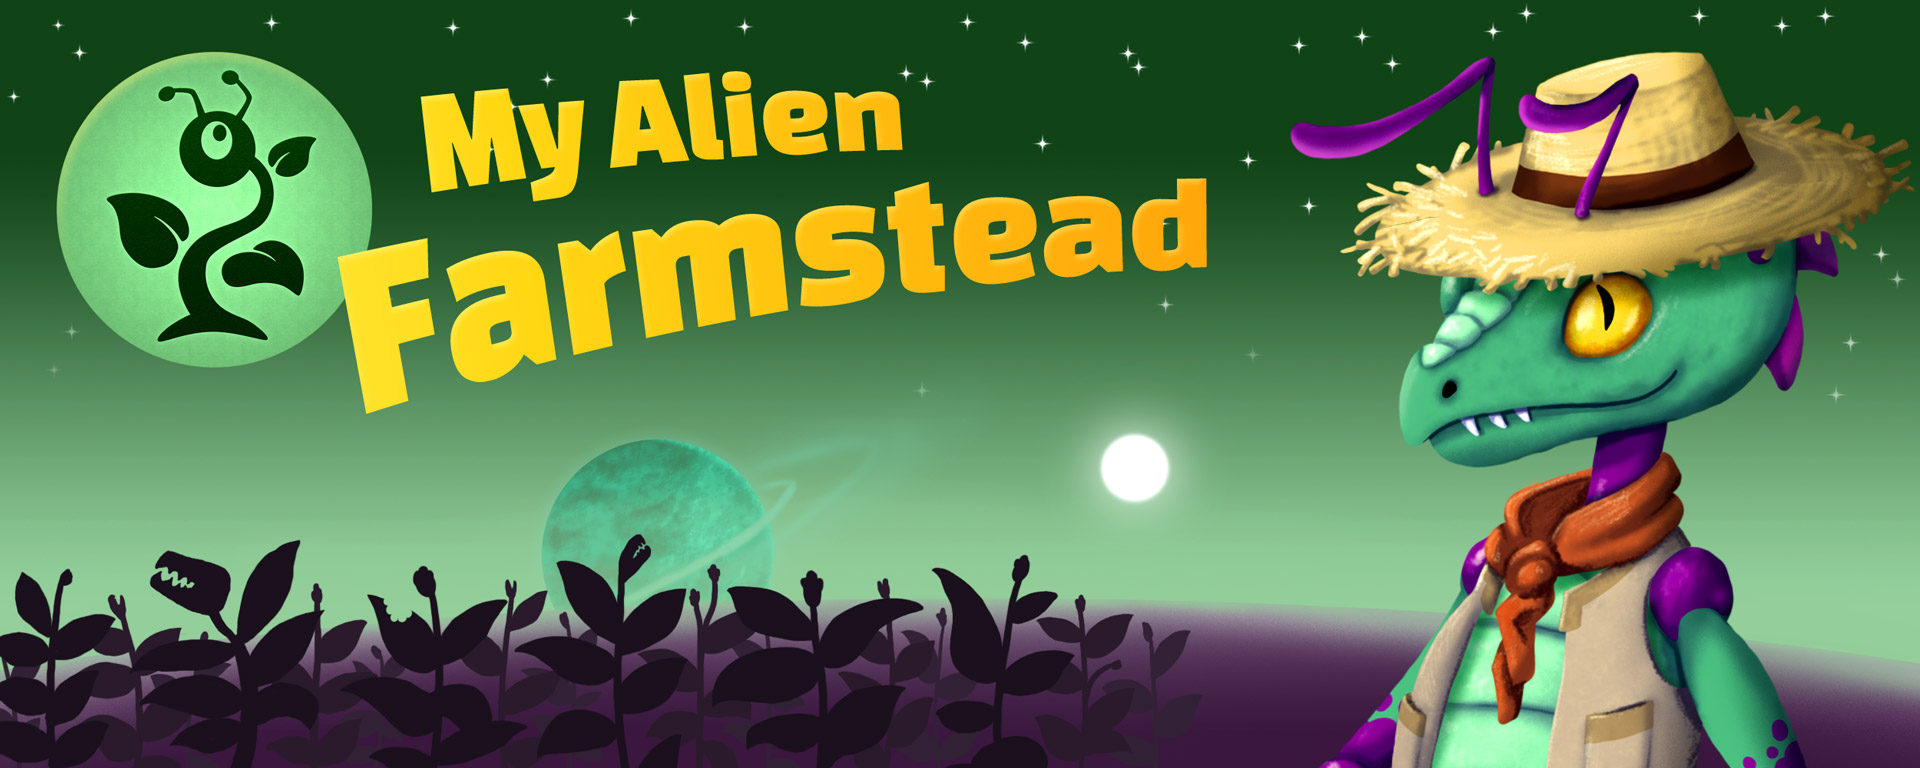 My Alien Farmstead with green alien plant logo, and an antid alien farmer in a straw hat and bandanna, in front of the silhouette of plants, a planet, a small sun, and stars.